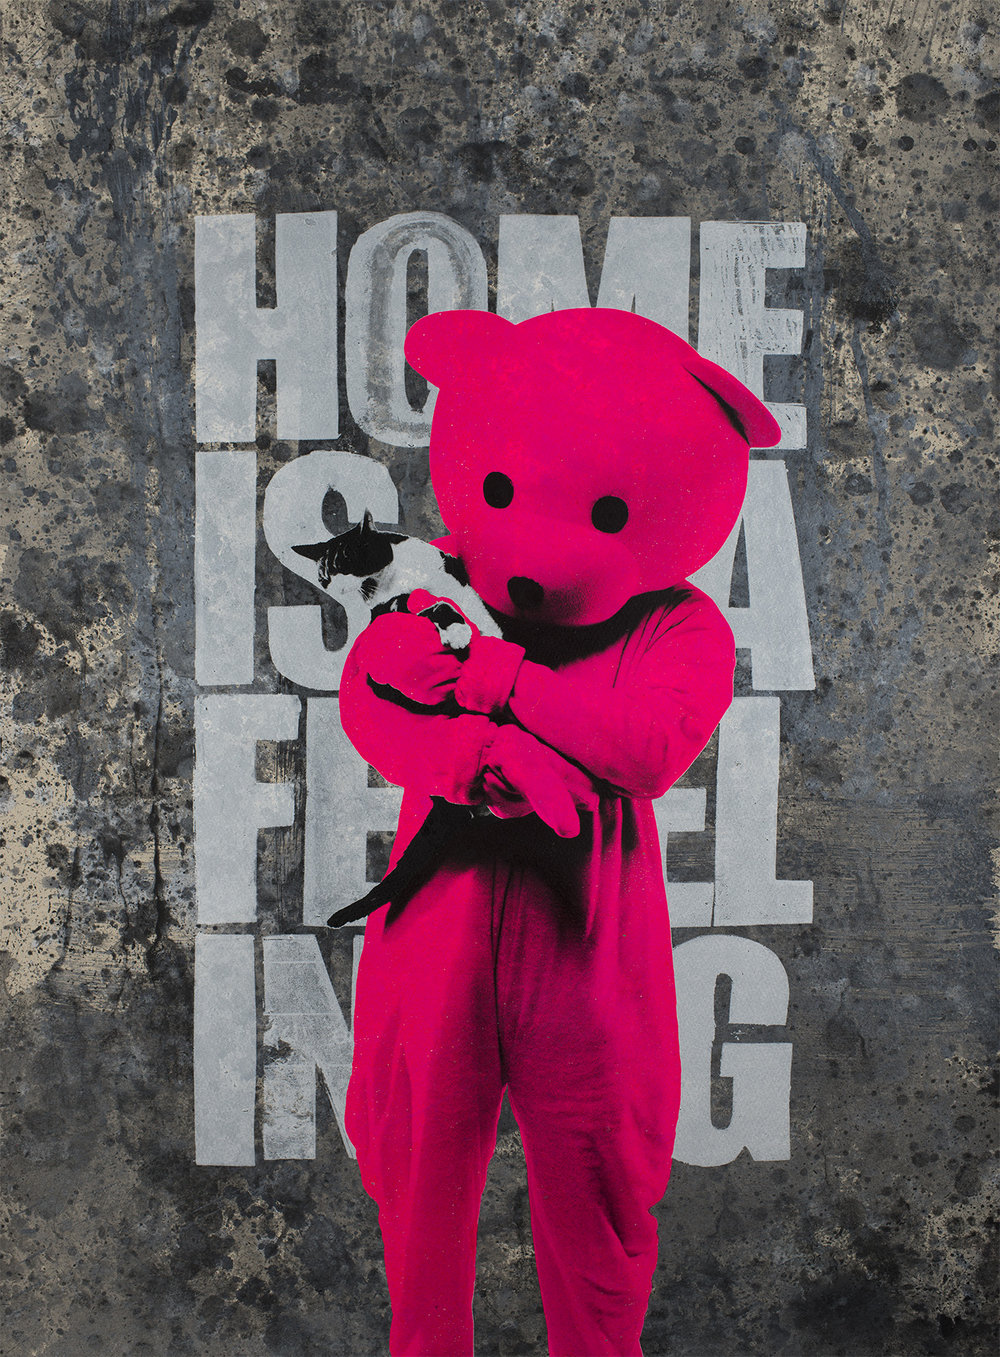 Home Is A Feeling - Giclée Print Edition of 100